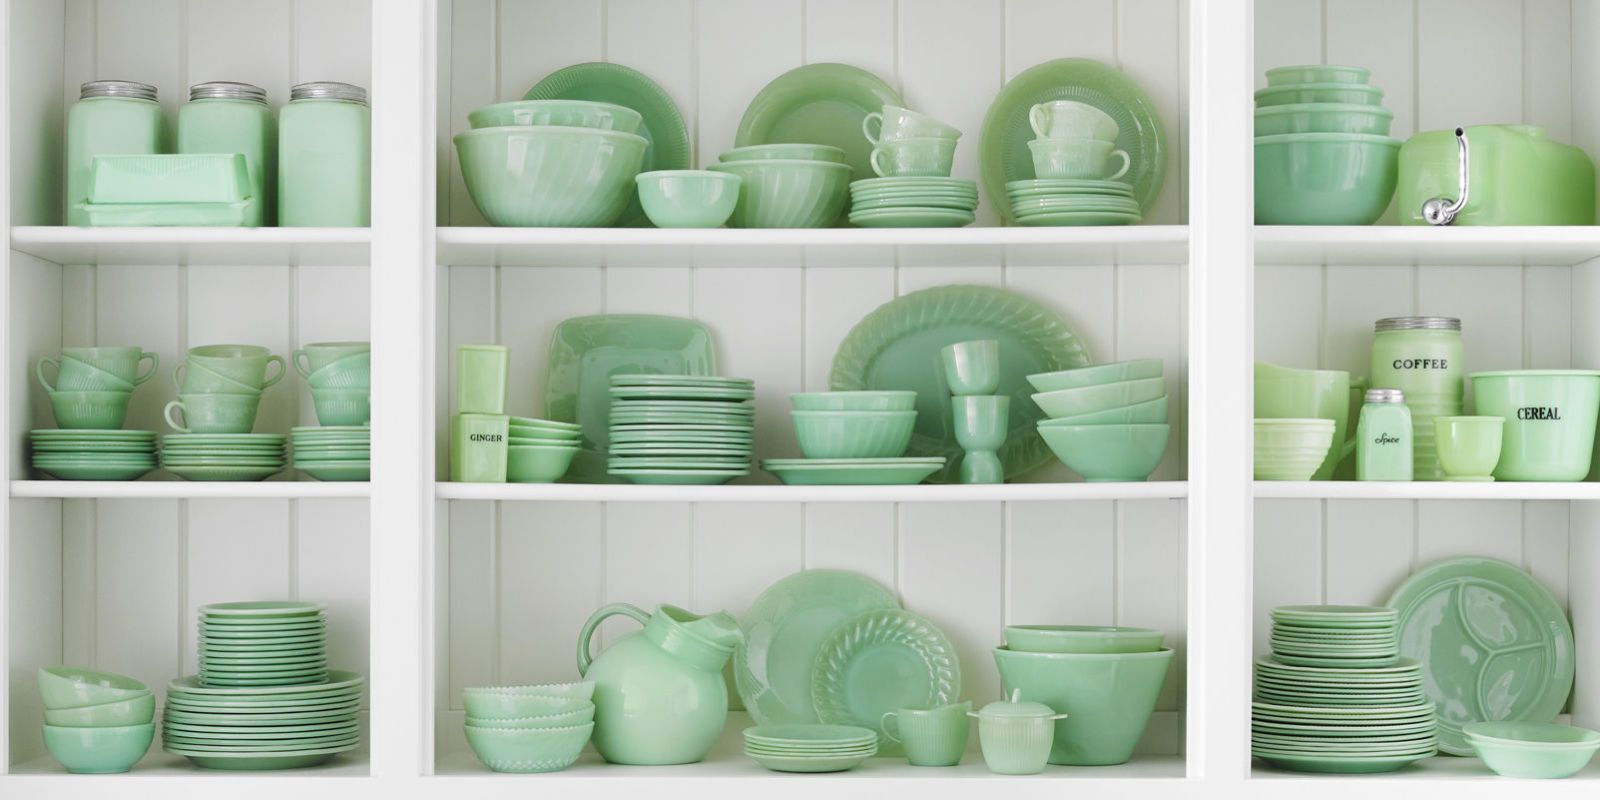 These green glass pieces will put your kitchen shelves and cupboards in mint condition. & Jadeite - Jadeite Kitchenware